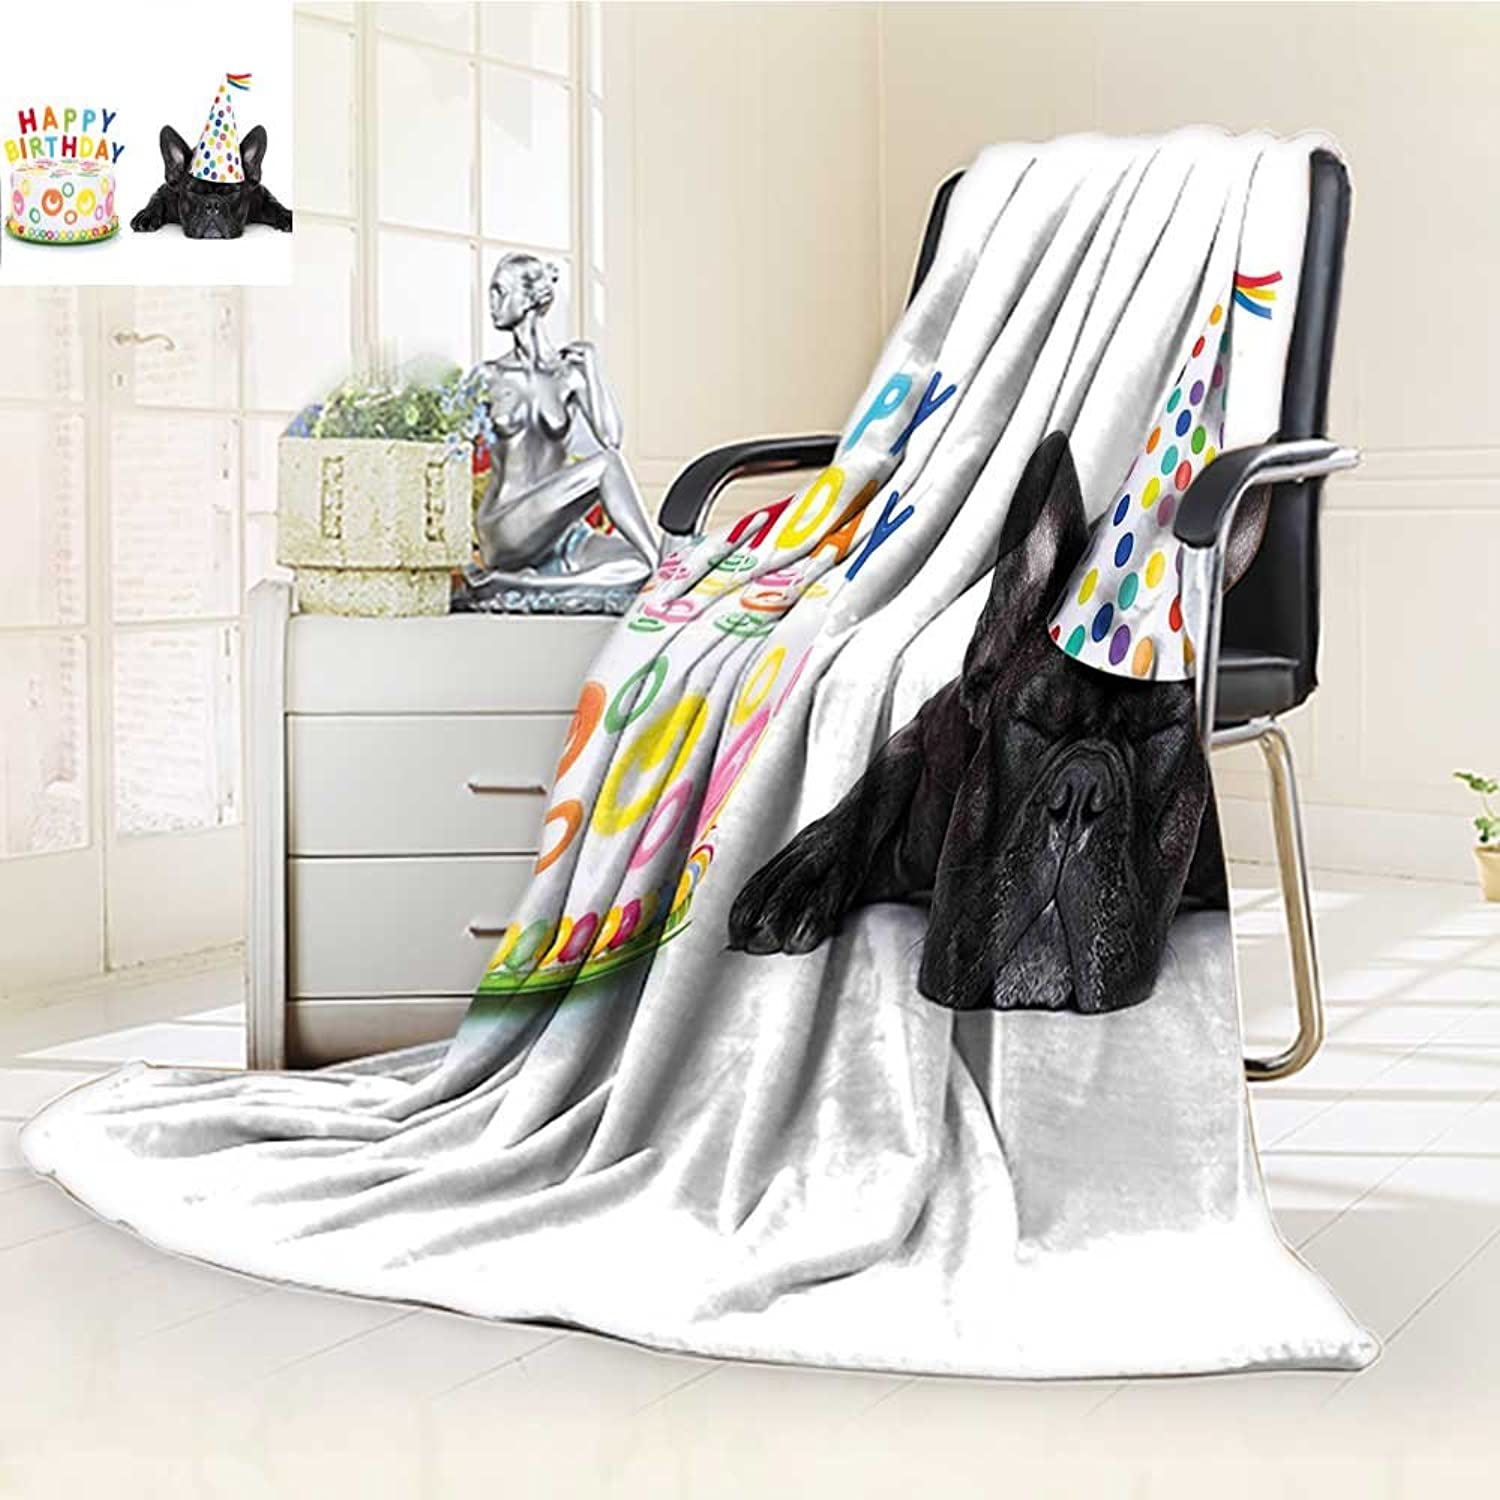 YOYI-HOME Warm Microfiber Duplex Printed Blanket Kids Sleepy French Bulldog Party Cake with Candles Cone Hat Image Multicolor Anti-Static,2 Ply Thick,Hypoallergenic W39.5  x H59